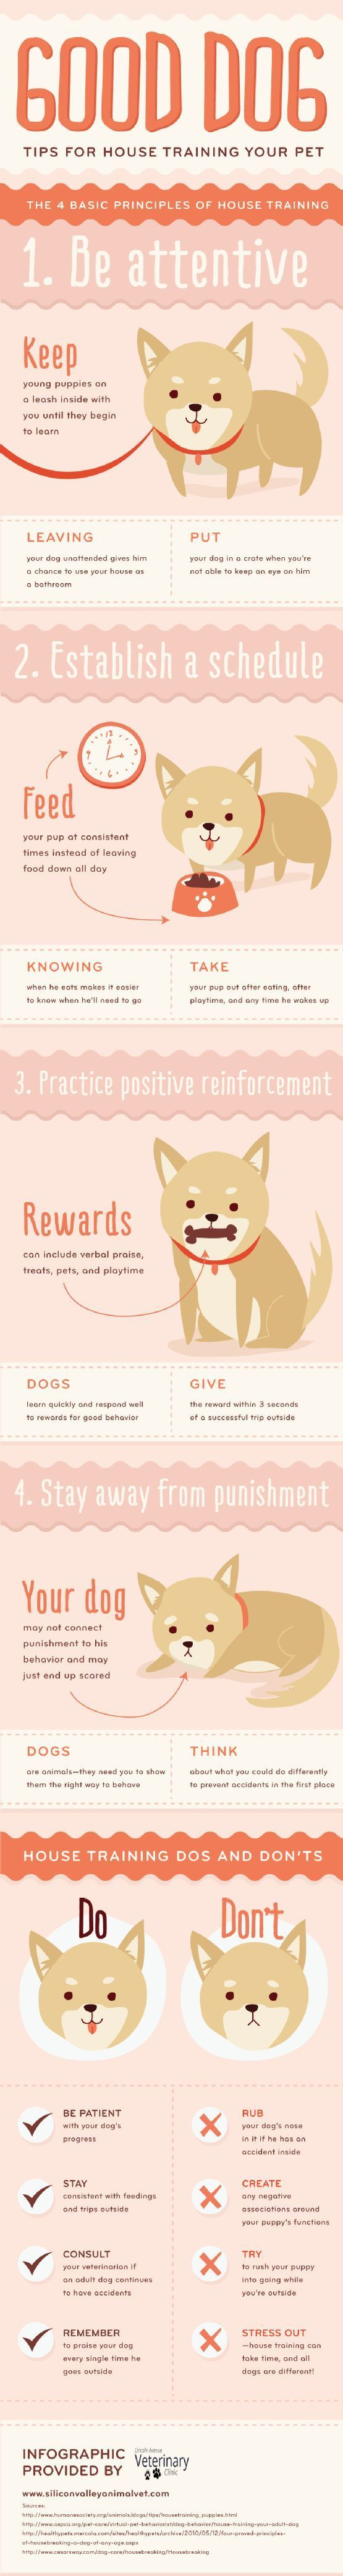 Tips For House Training Your Dog - Browse this infographic for tips on how to house train your dog.: